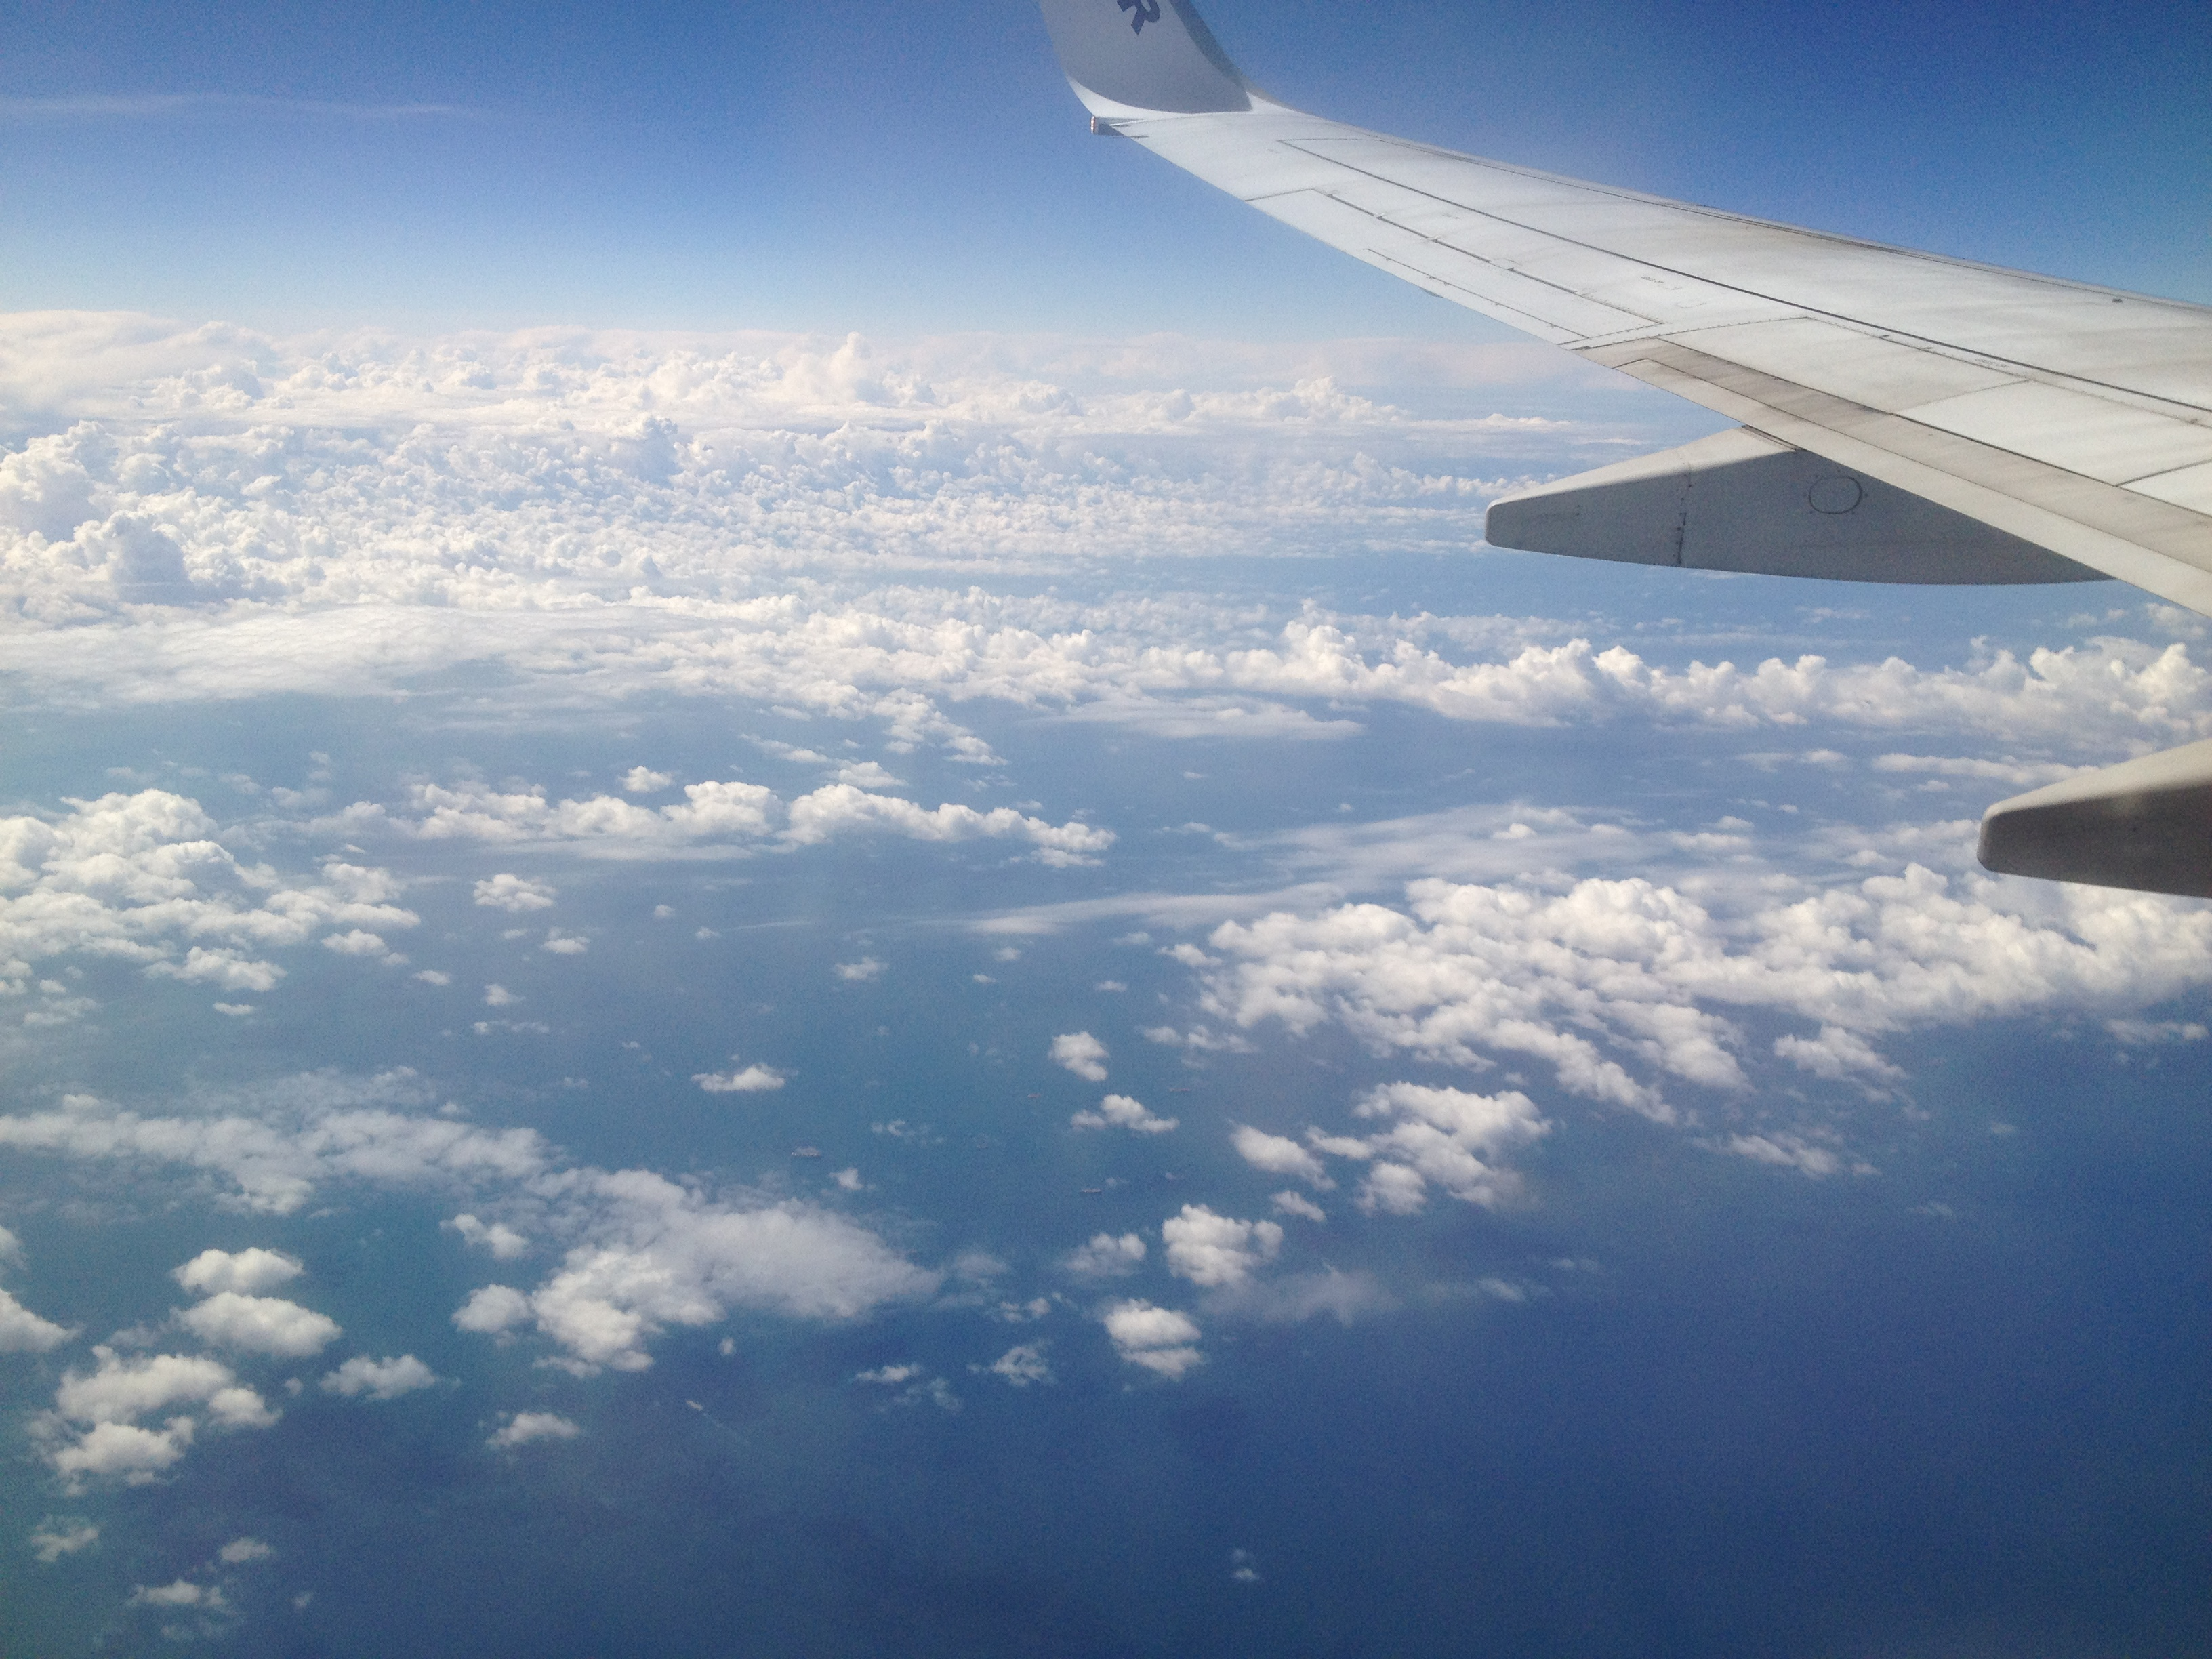 9b32aa6be6a9 airplane and clouds. airplane and clouds · Condé Nast Traveler ...